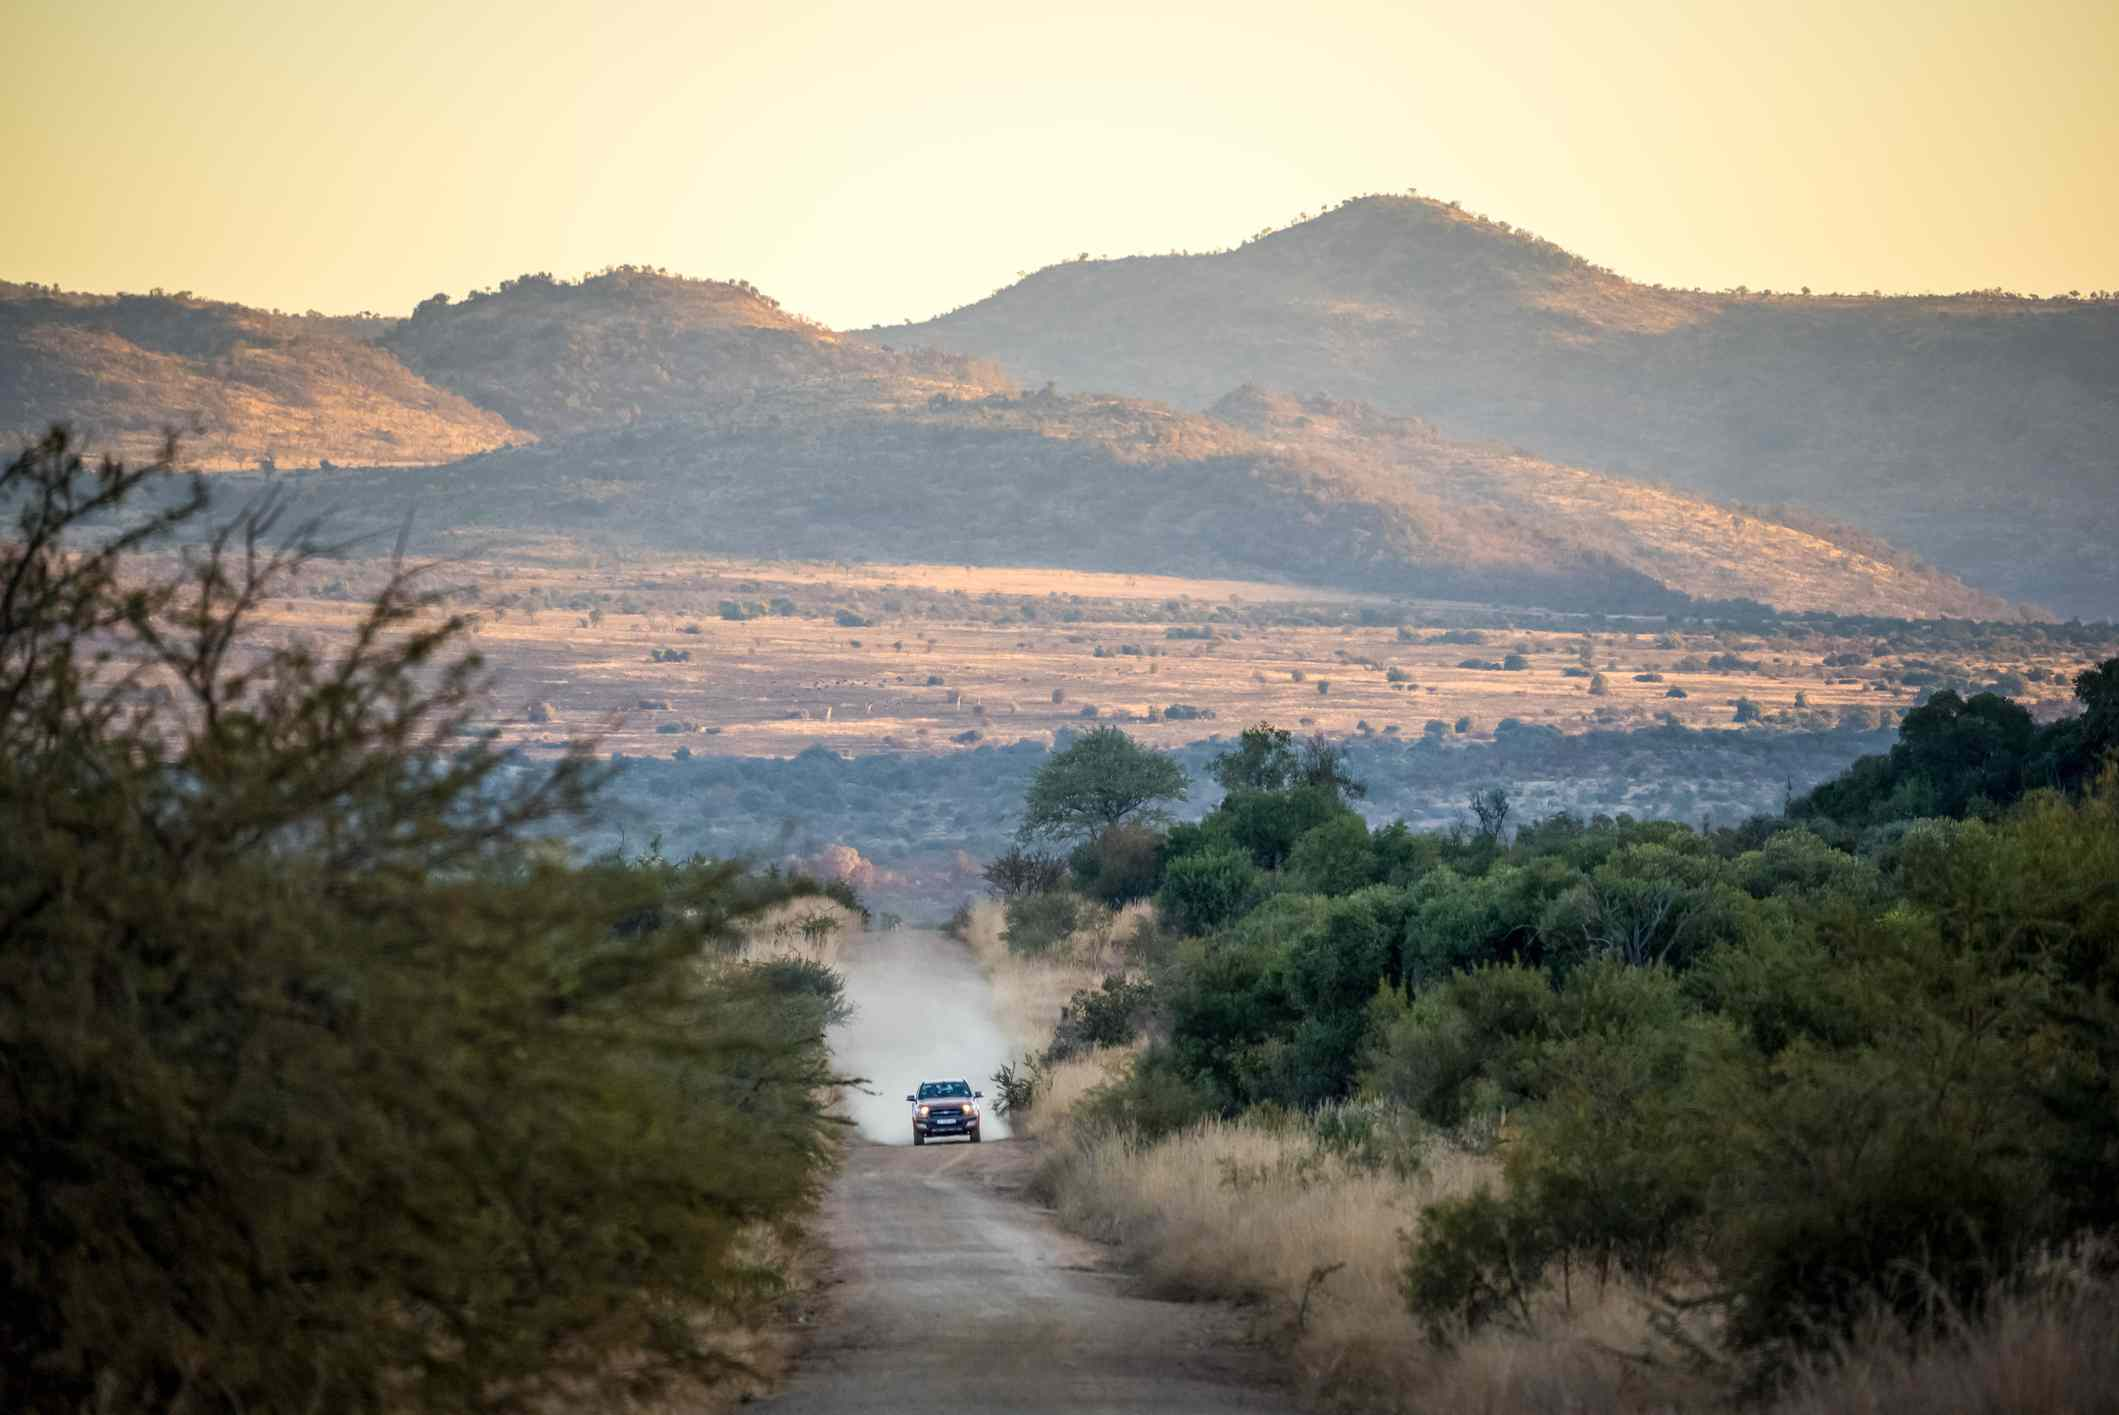 4x4 vehicle on a gravel road in South Africa